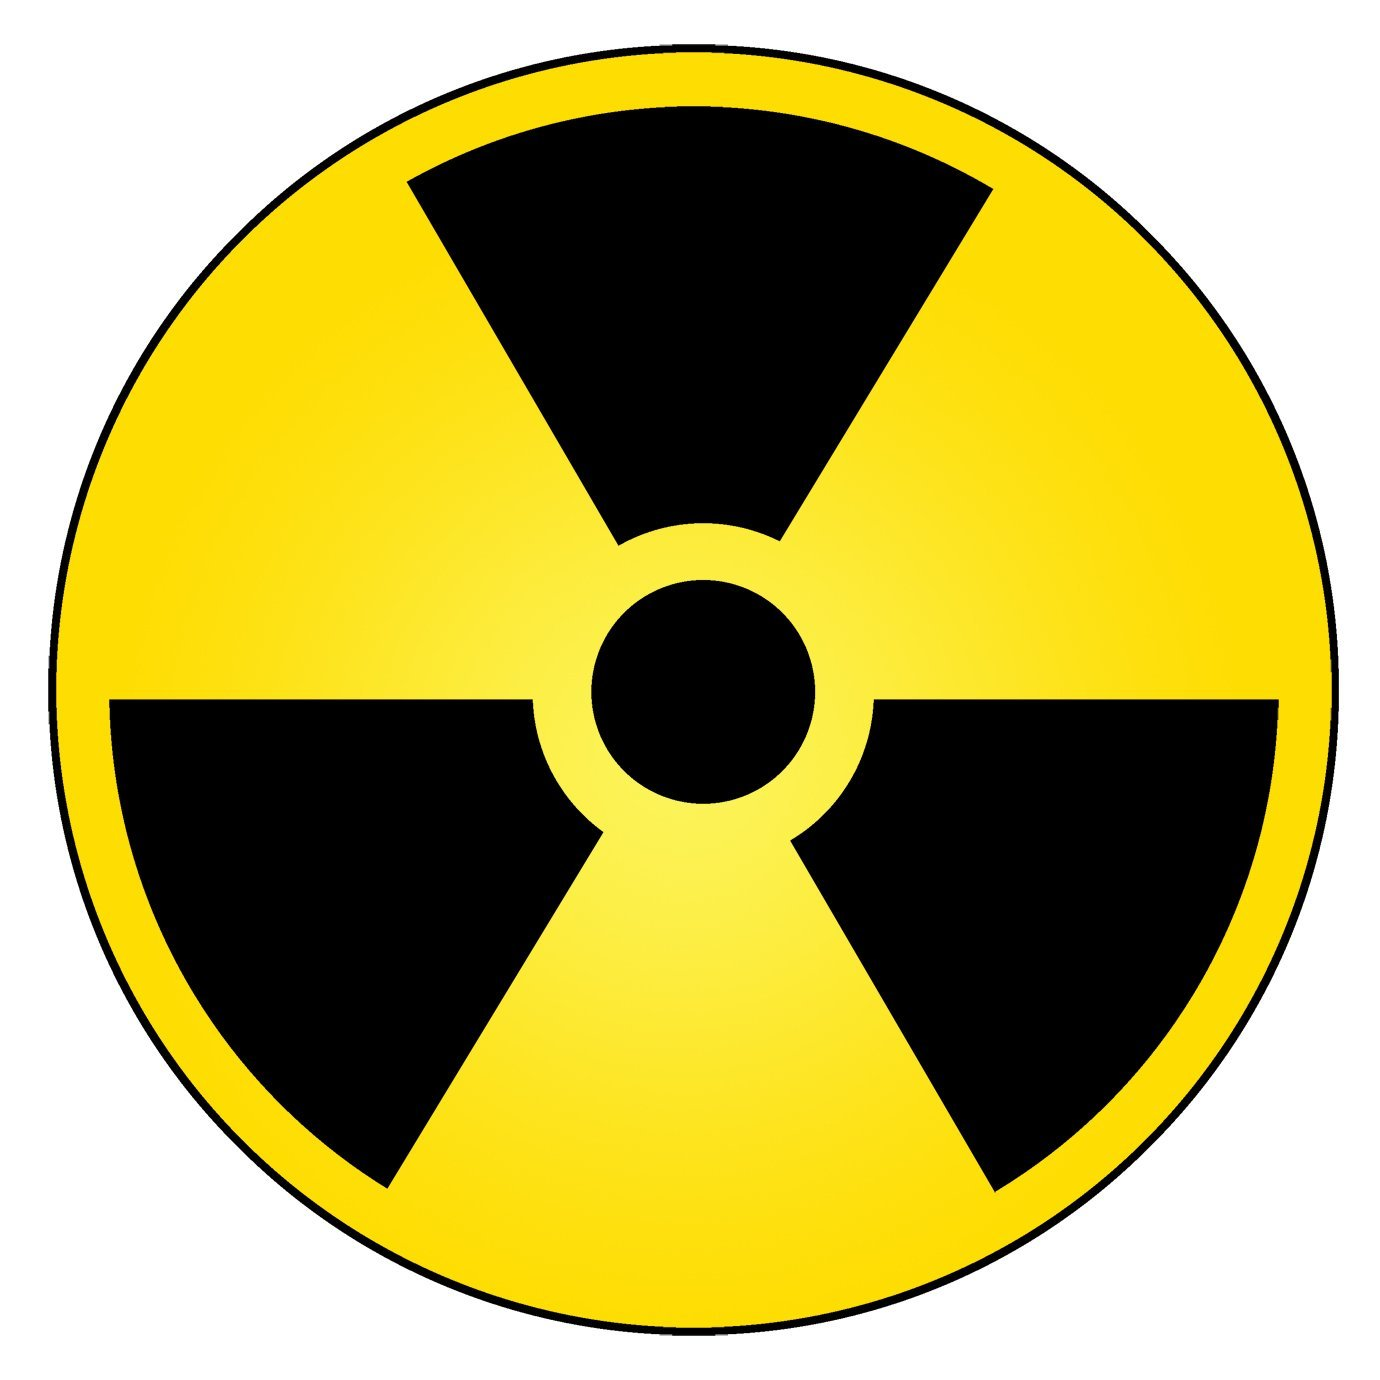 Radioactive clipart radioactivity Nuclear (87+) Sign Clipart radiation